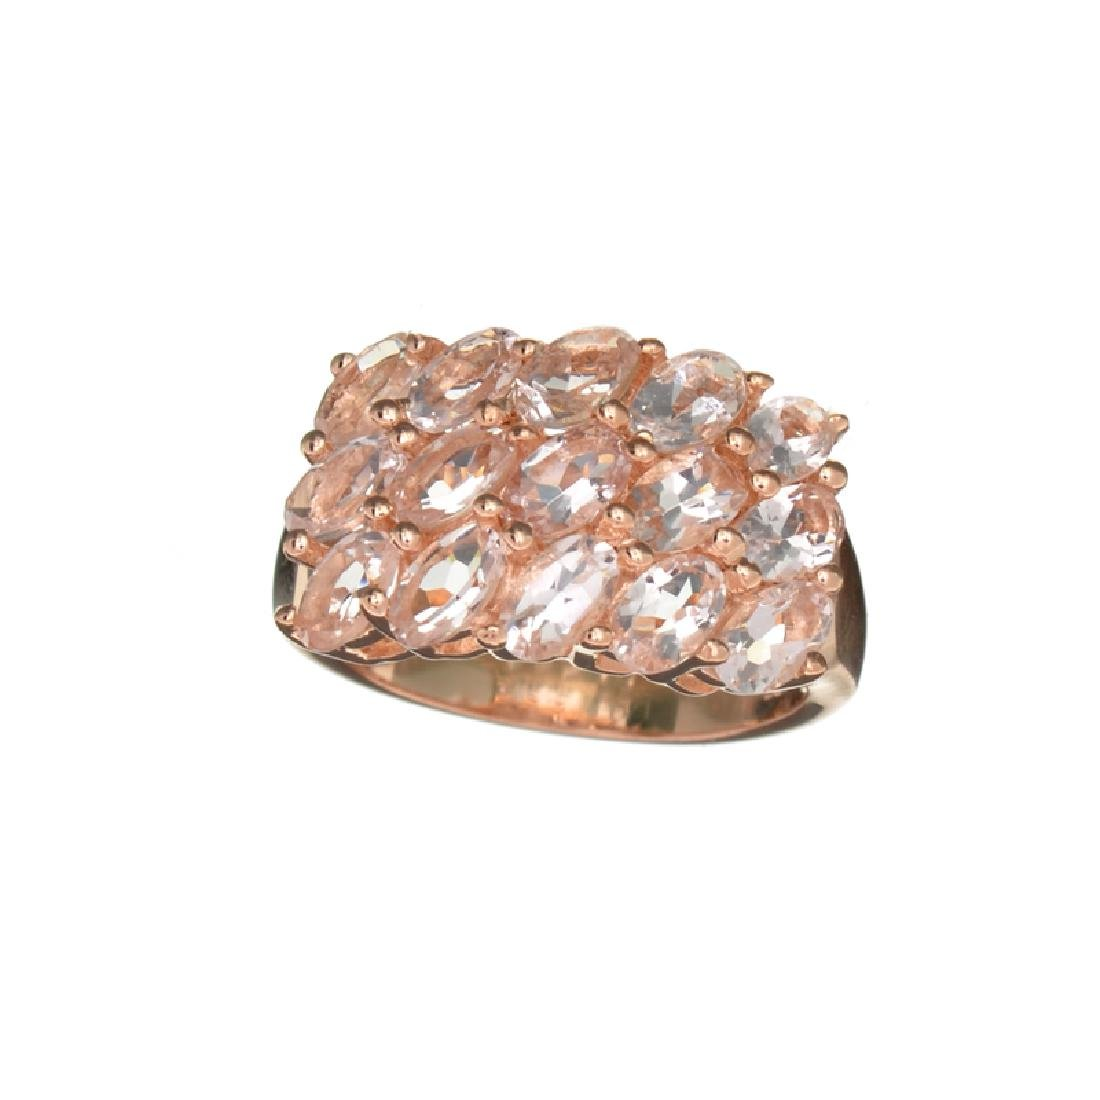 APP: 1.9k Fine Jewelry 5.00CT Oval Cut Morganite Over